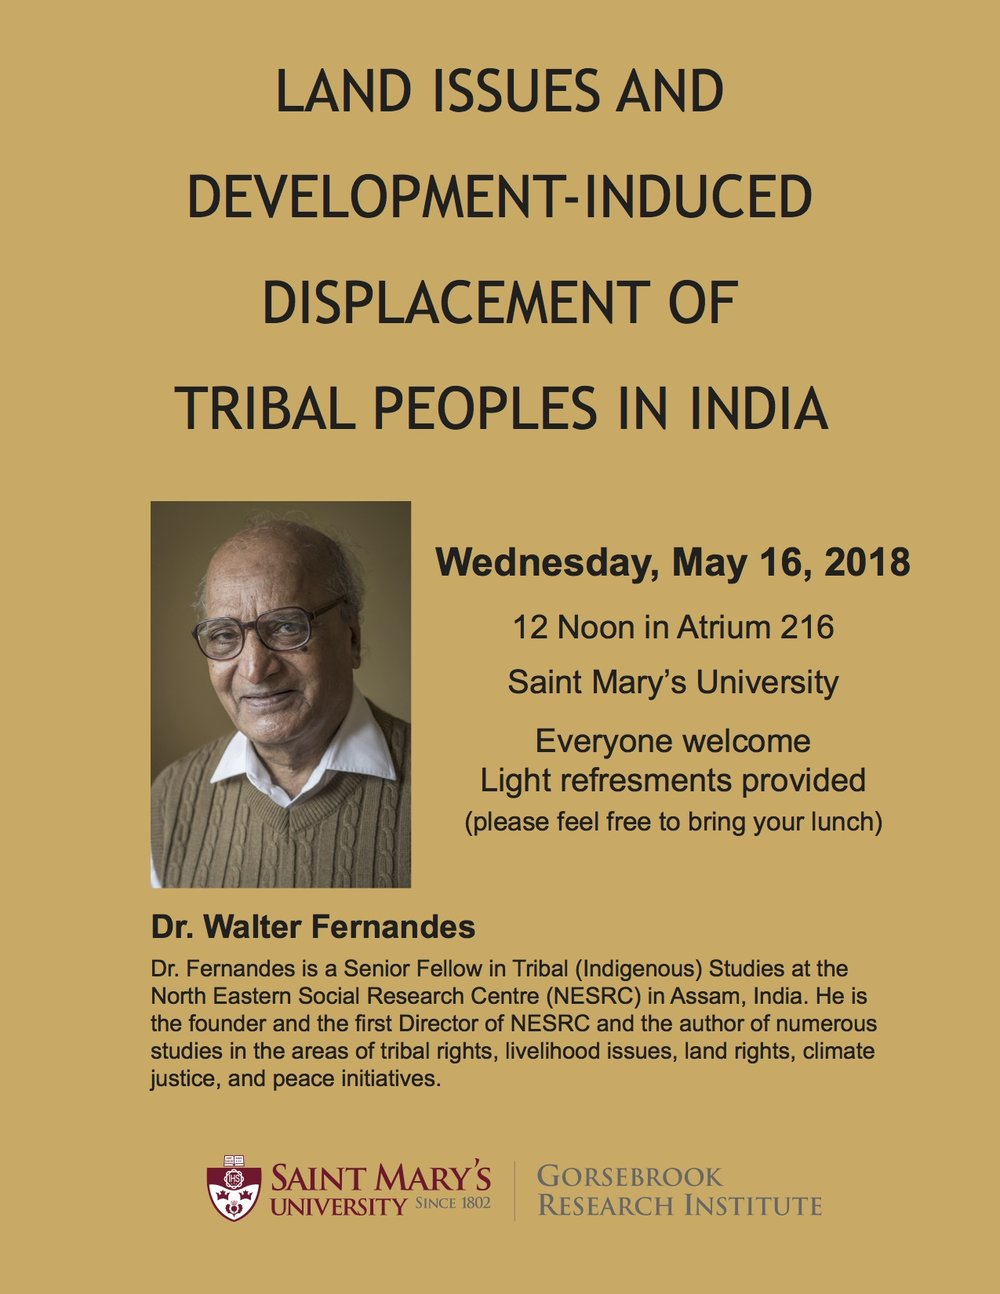 Dr. Walter Fernandes is a Senior Fellow in Tribal (Indigenous) Studies at the North Eastern Social Research Centre (NESRC) in Assam, India. He is the founder and the first Director of NESRC and the author of numerous studies in the areas of tribal rights, livelihood issues, land rights, climate justice, and peace initiatives. Everyone welcome to attend the lecture. Light refresments provided (please feel free to bring your lunch).